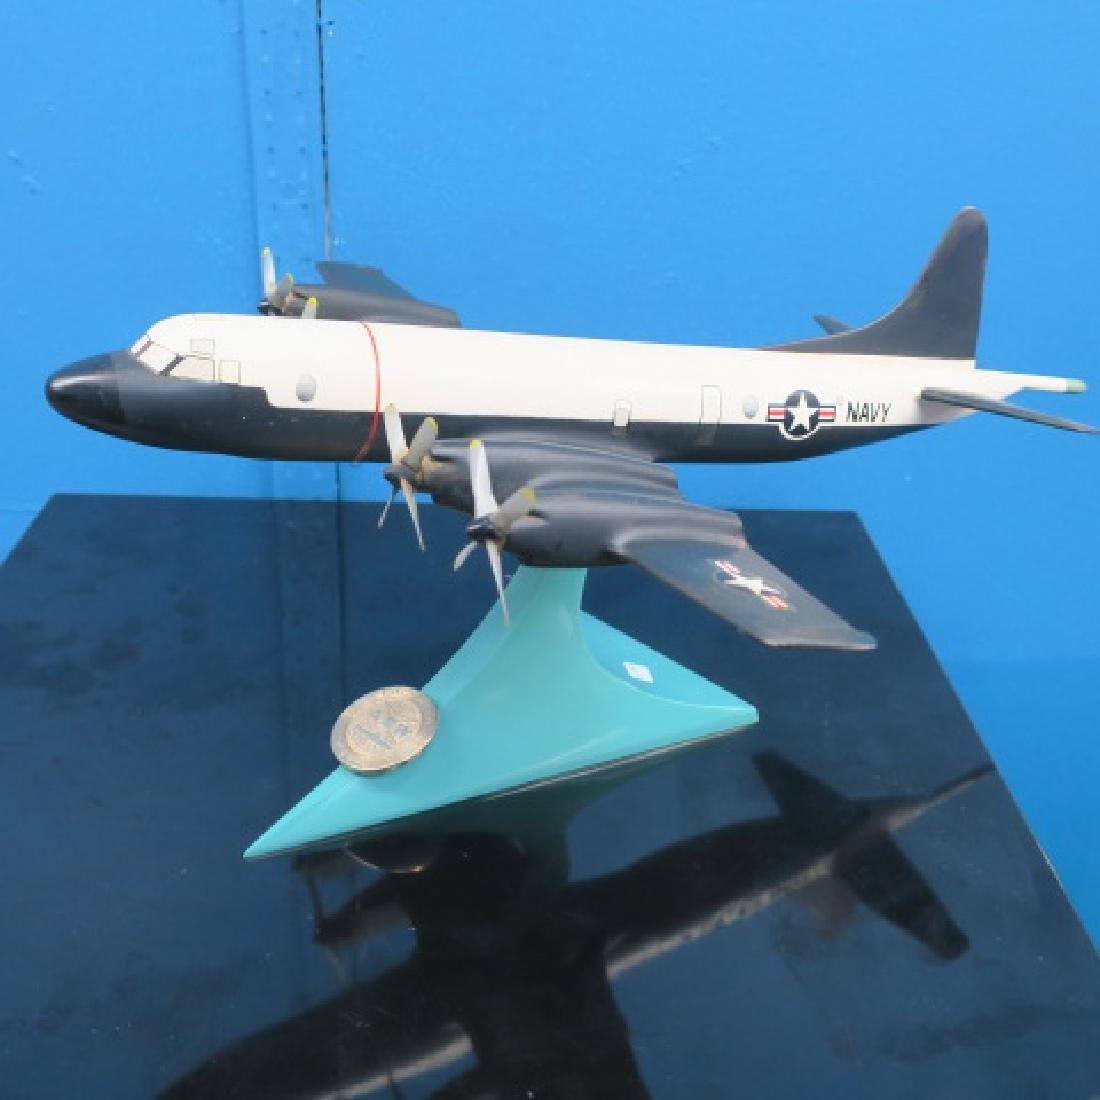 Manufacturers Model of US NAVY P-3 Orion: - 3